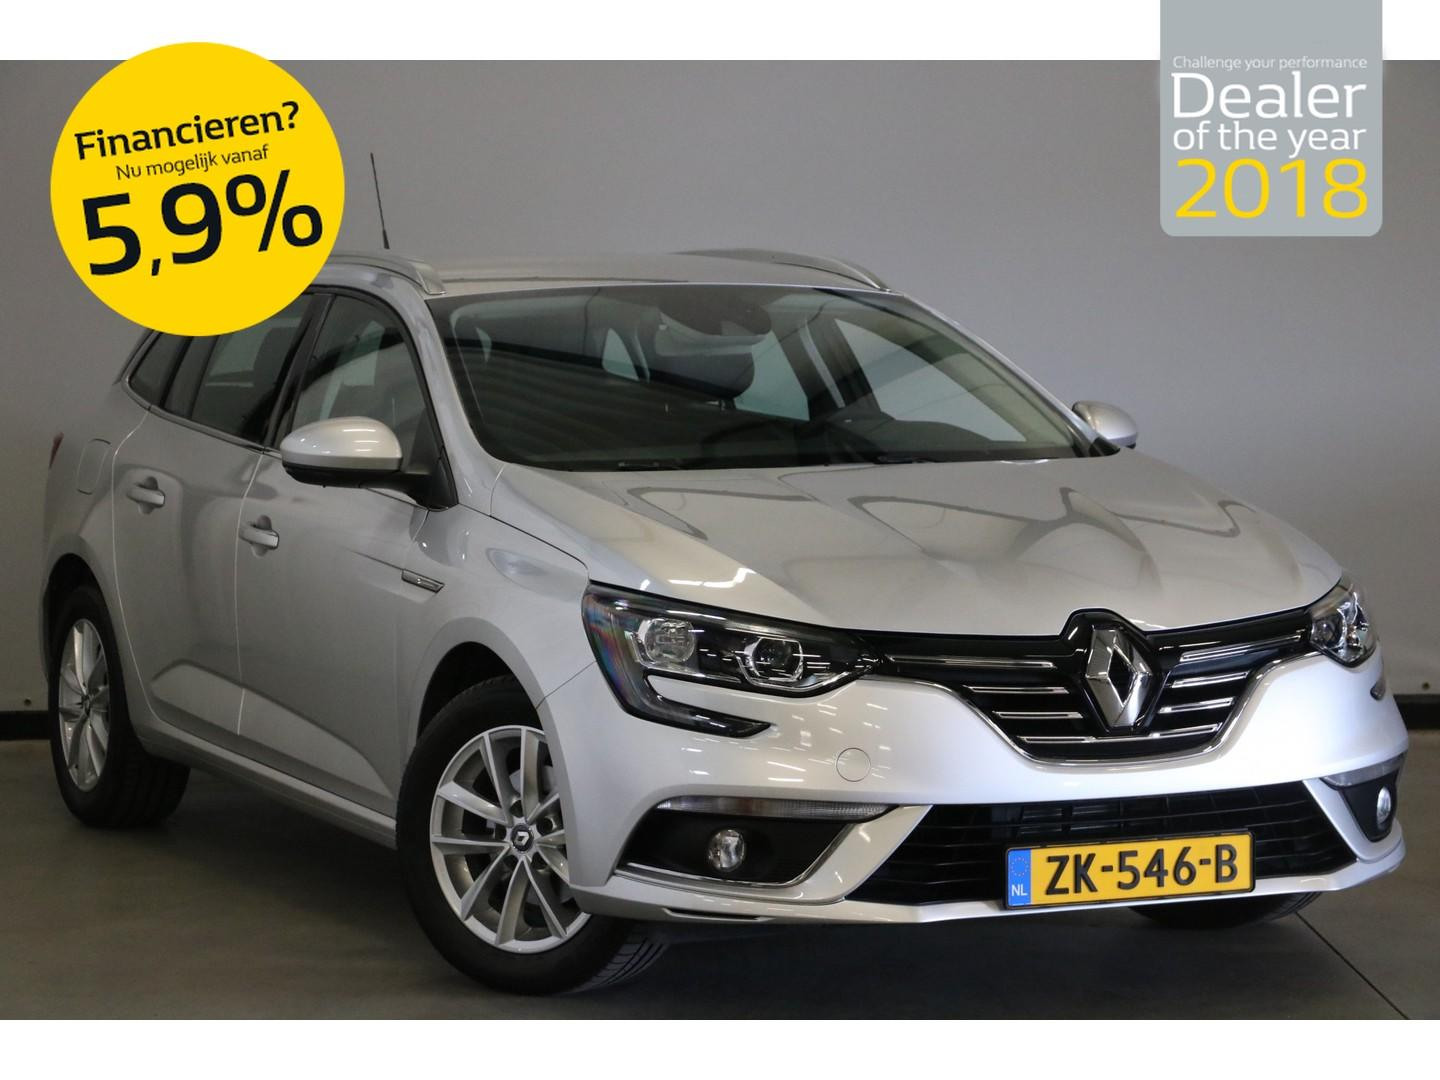 Renault Mégane Estate 1.5 dci 110pk intens